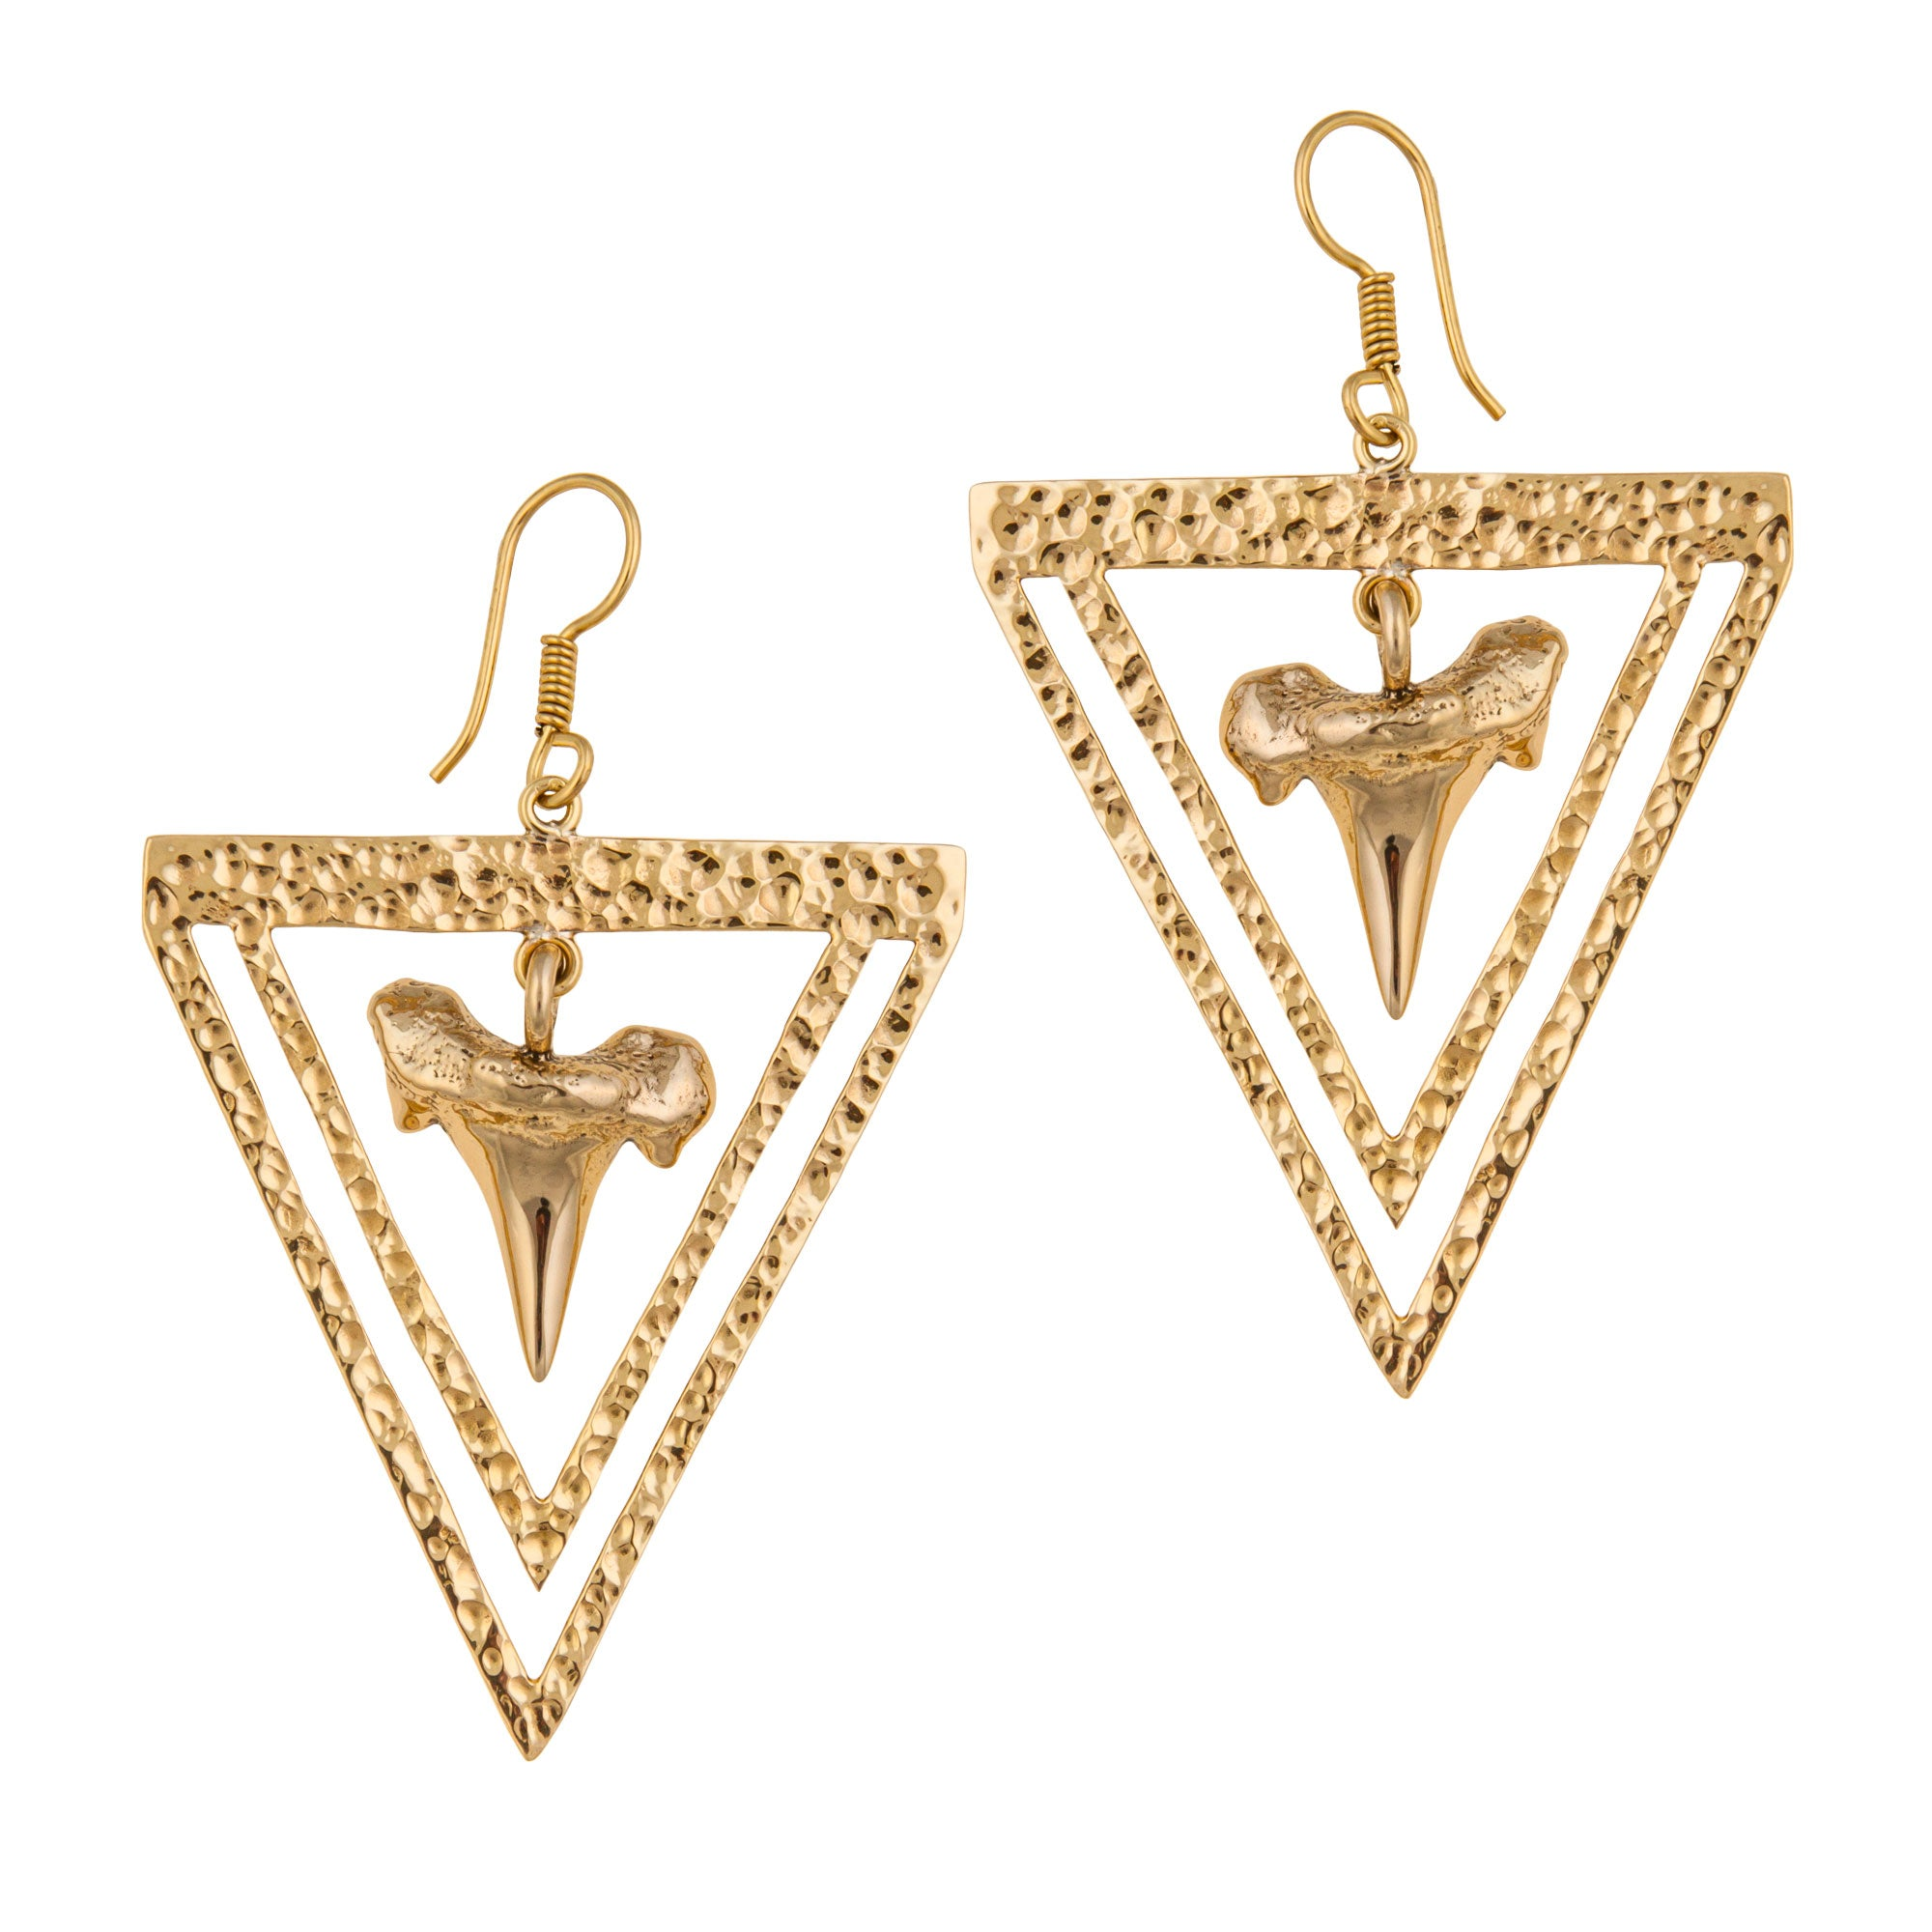 Alchemia Shark Teeth Hammered Triangle Earrings | Charles Albert Jewelry